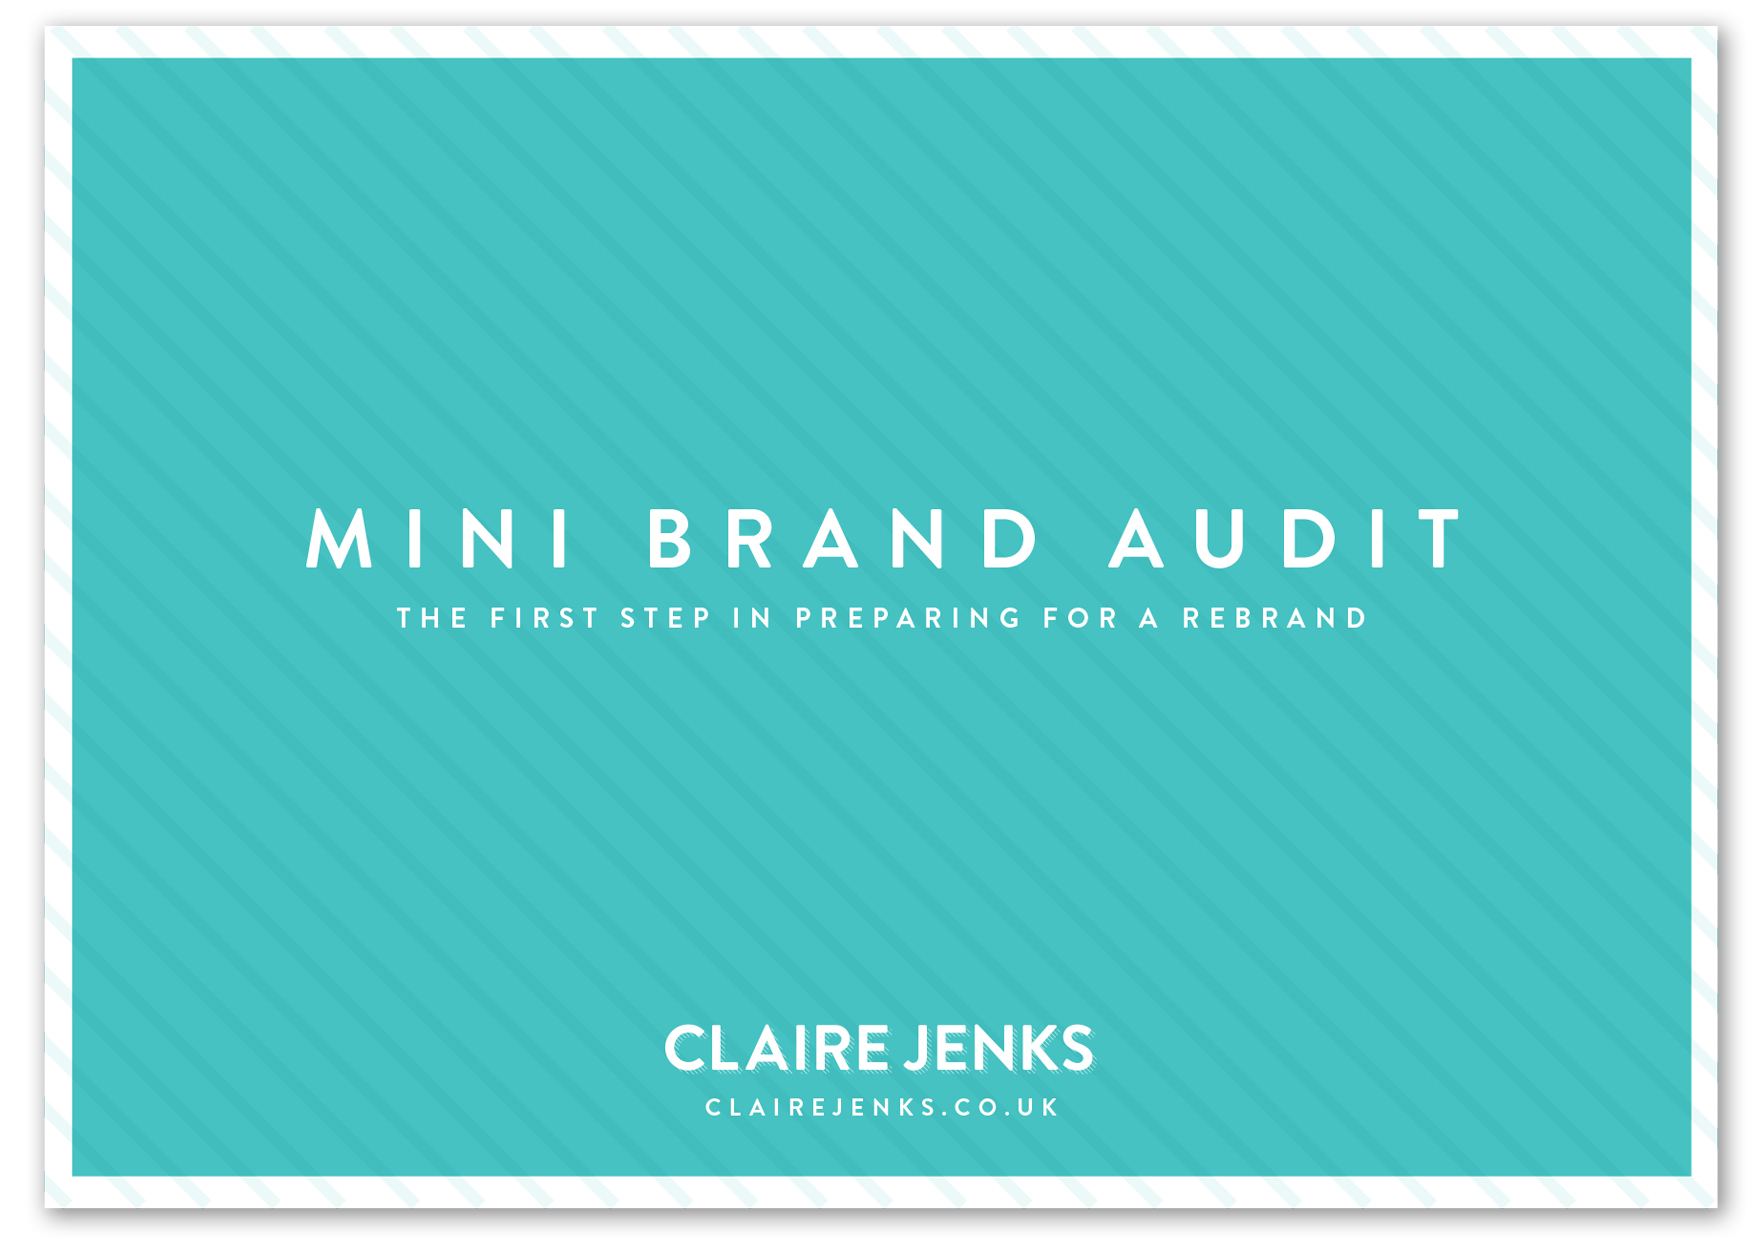 Mini Brand Audit-First Step in Preparing for a Rebrand-Claire Jenks Design-1